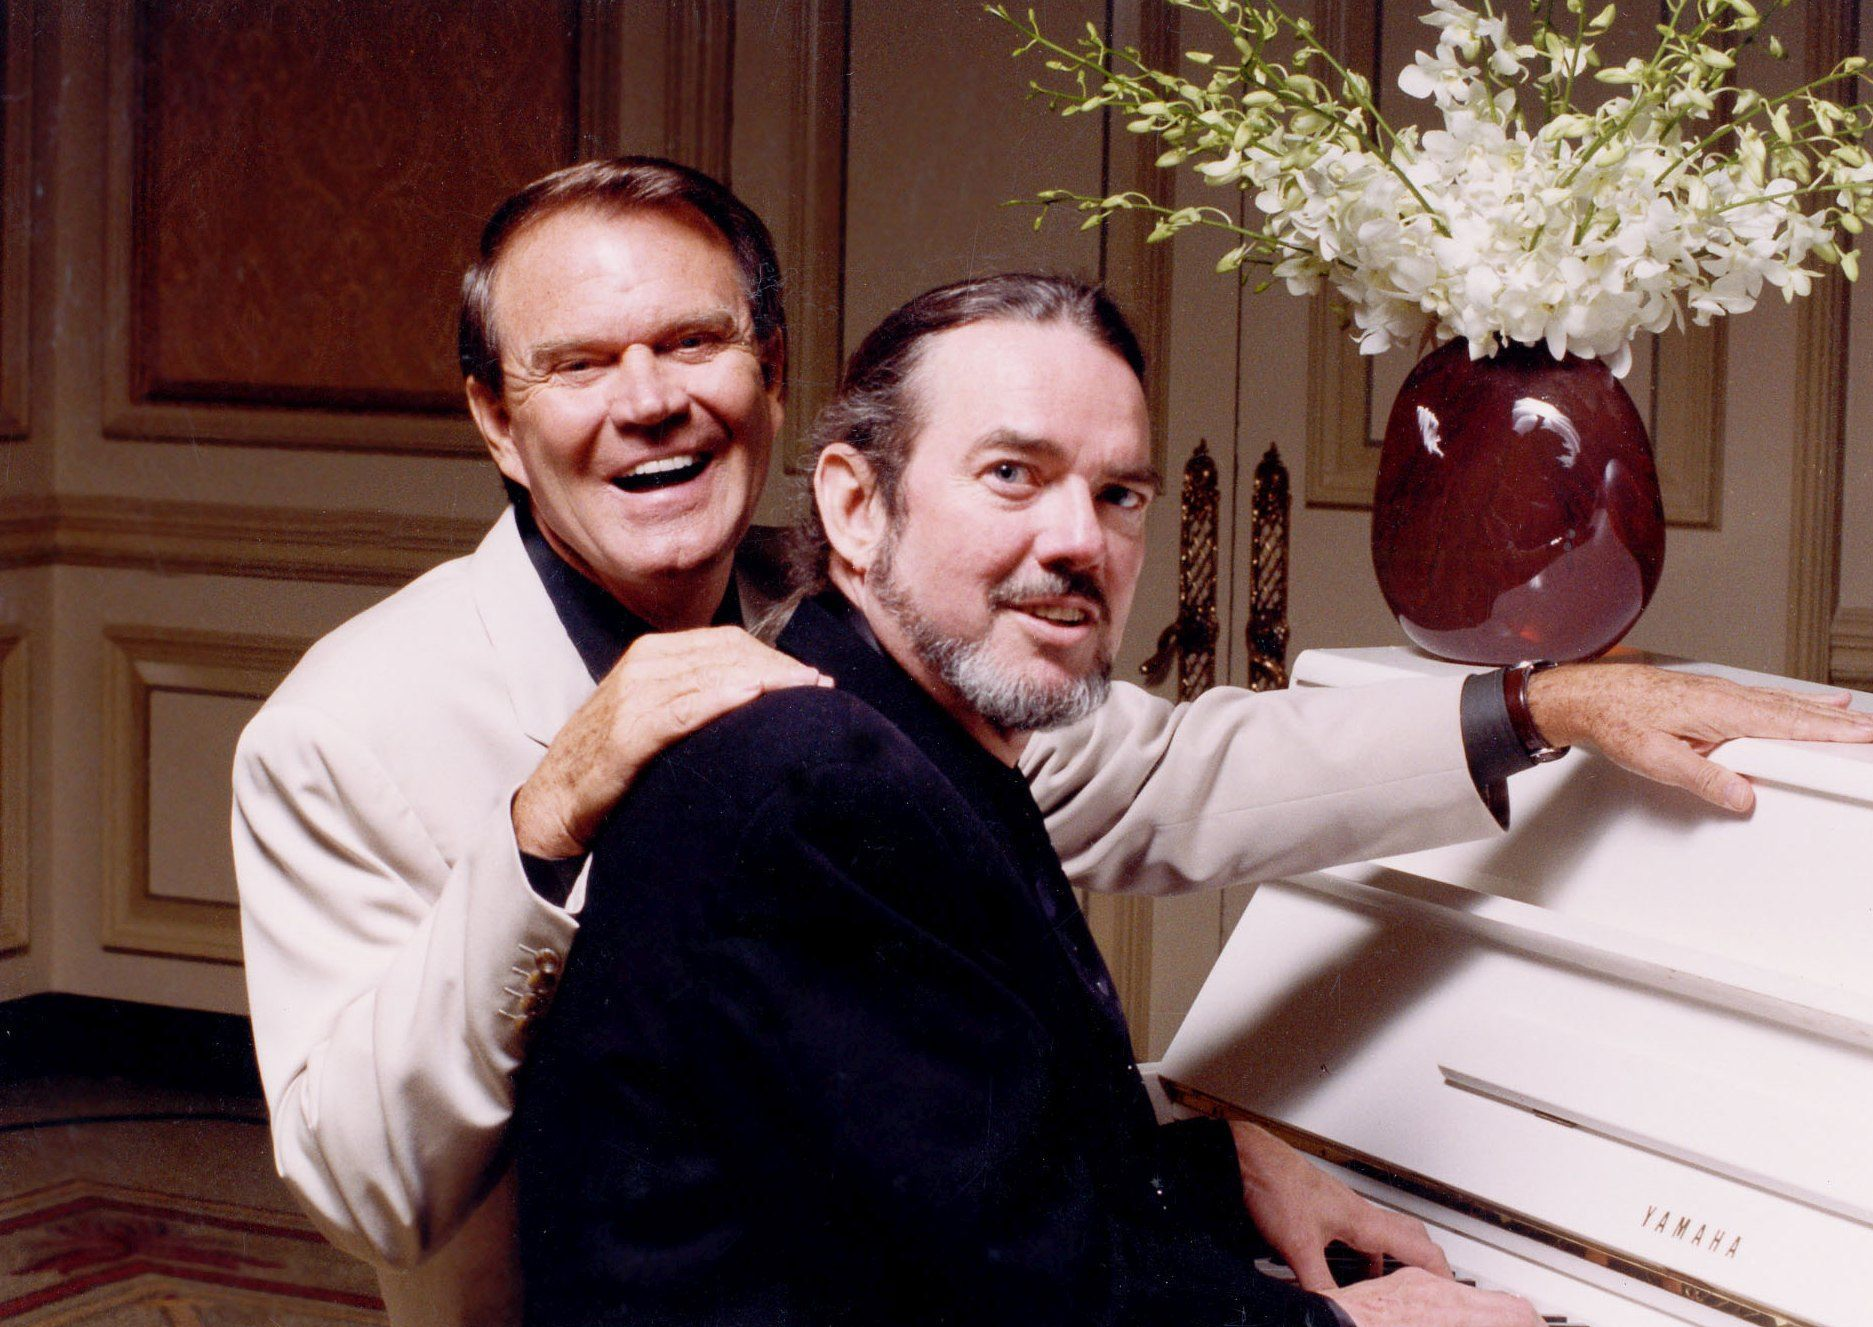 Composer Jimmy Webb, right, will play his songs made famous by the late Glen Campbell, right, during a show at Opening Nights Tuesday.